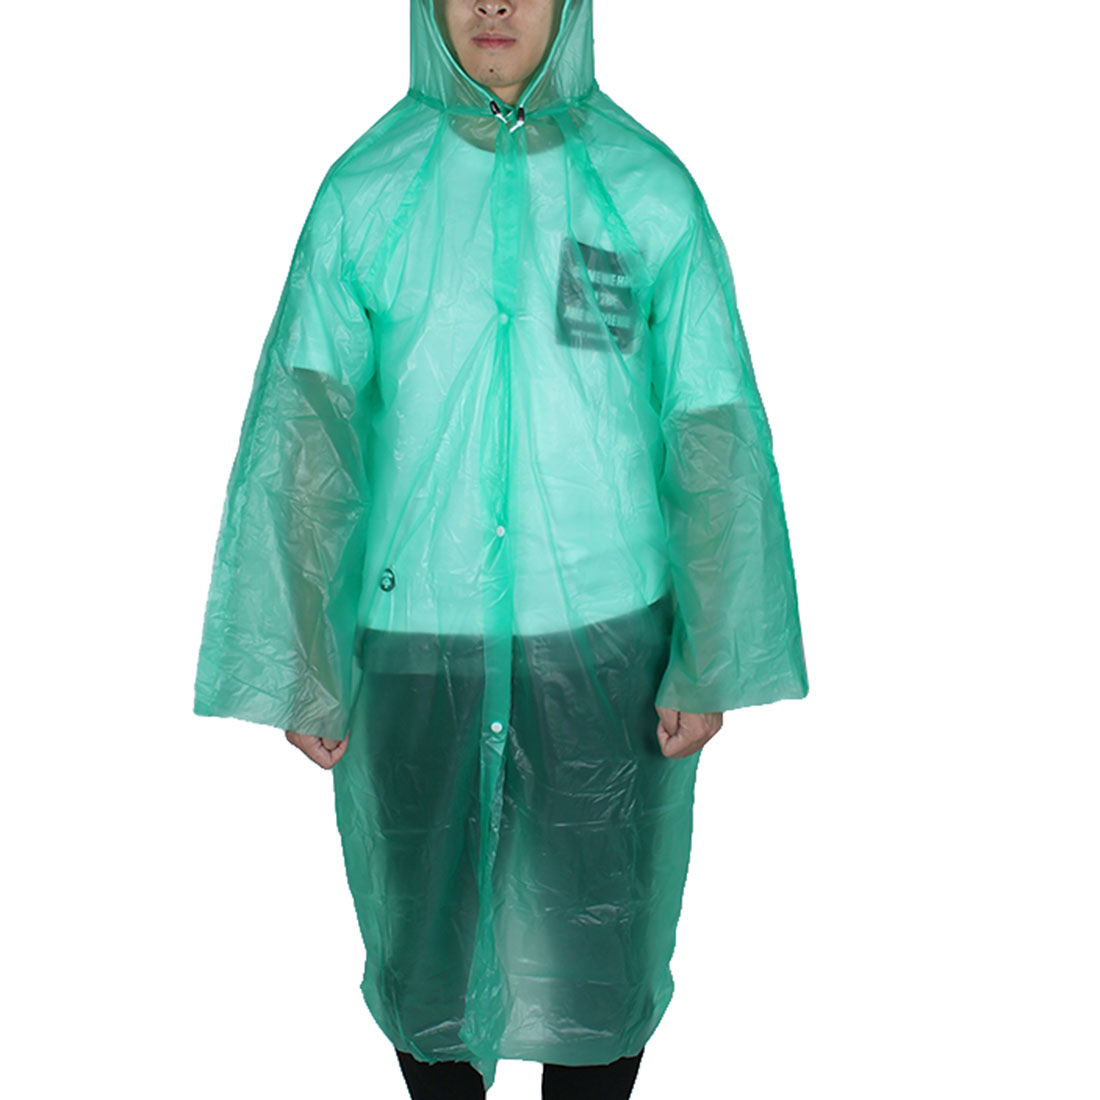 Green Disposable Emergency Plastic Raincoat Rain Coat Llaia